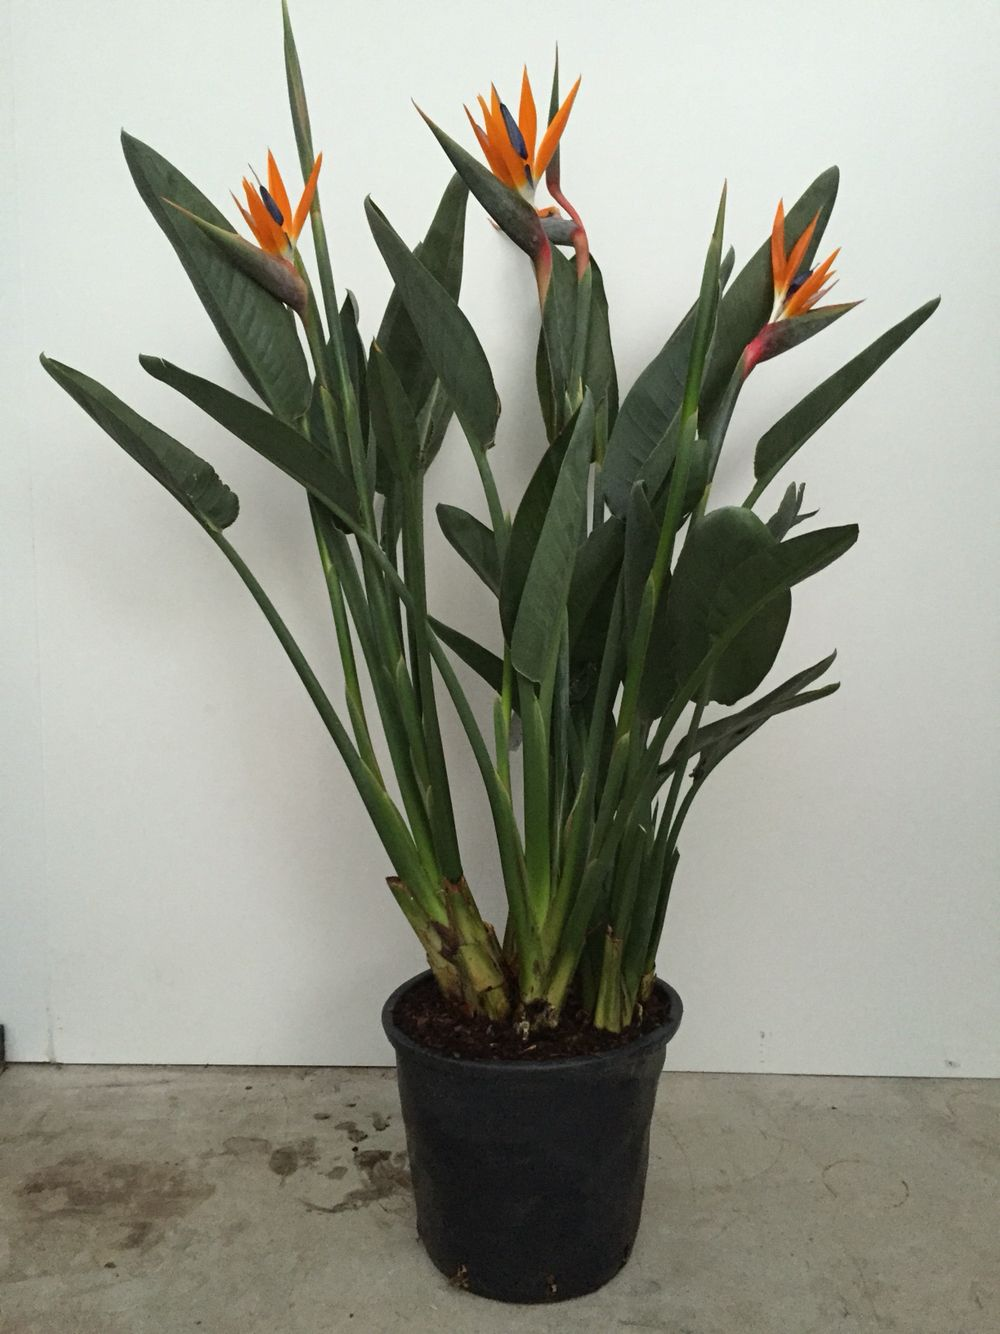 Strelitzia 35 cm pot. Flowering season started!